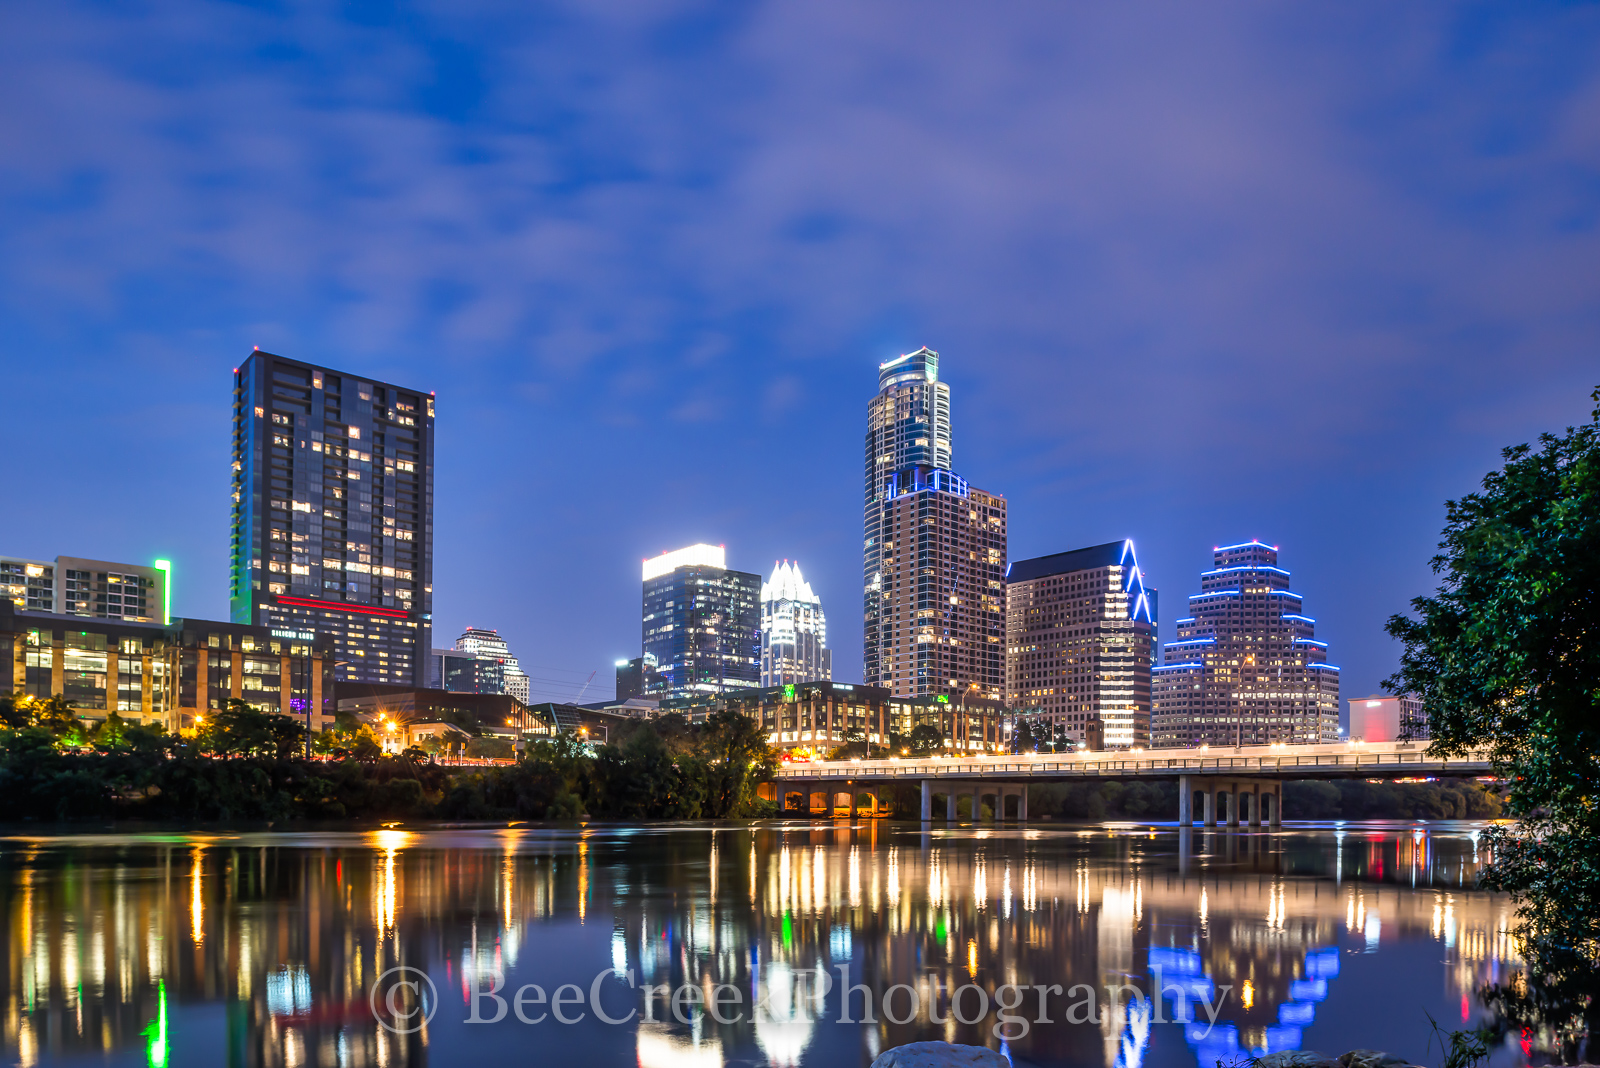 Austin, skylines, cityscapes, city, urban, first street bridge, cities, downtown, shoreline, night, evening, dark, reflections, blue hour, Lady Bird Lake, hike and bike trail, auditorium shores, Vic M, photo